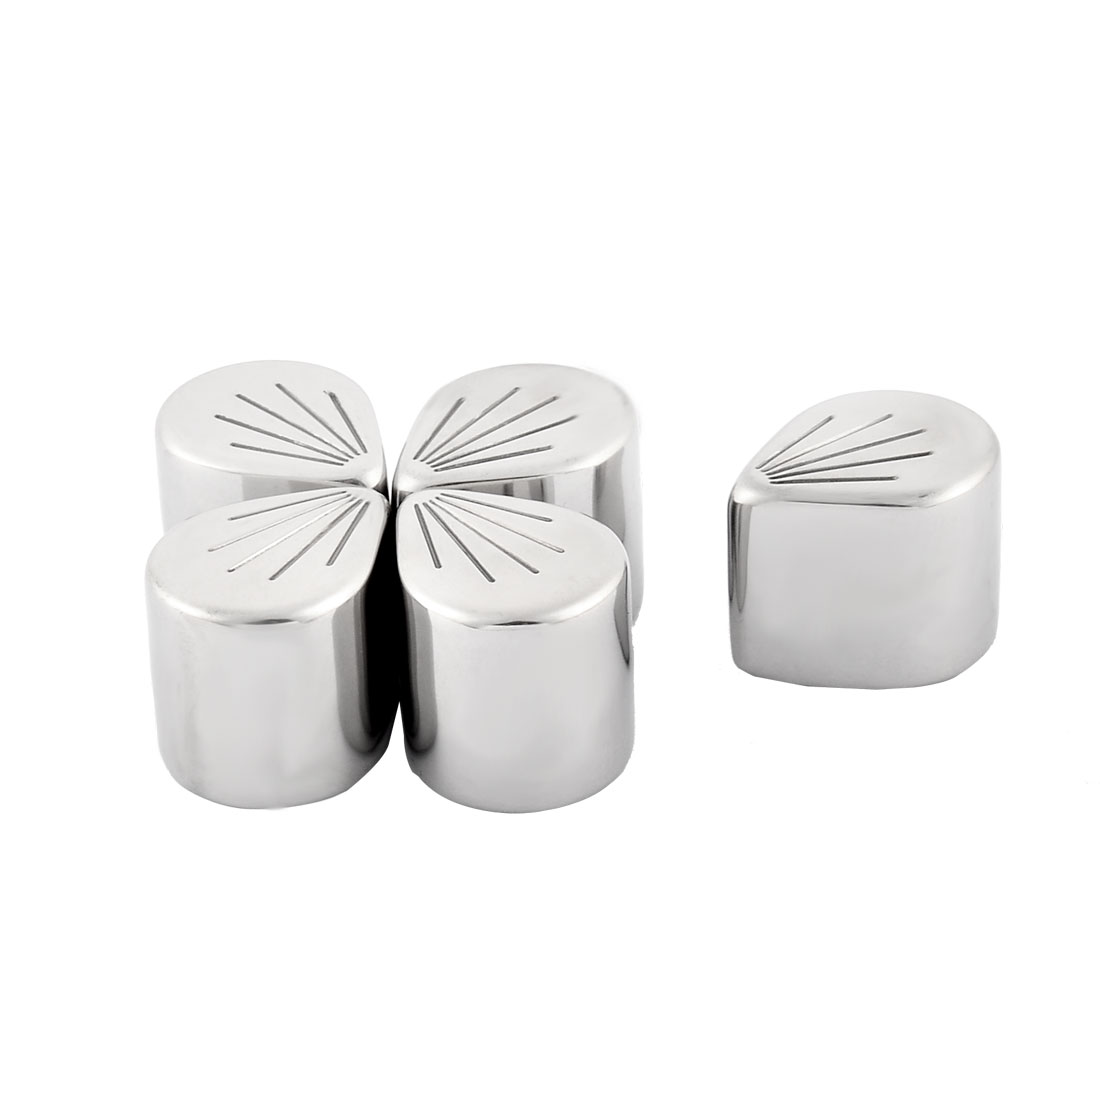 Home Stainless Steel Leaf Shaped Soda Juice Ice Cube Silver Tone 5 Pcs w Pocket